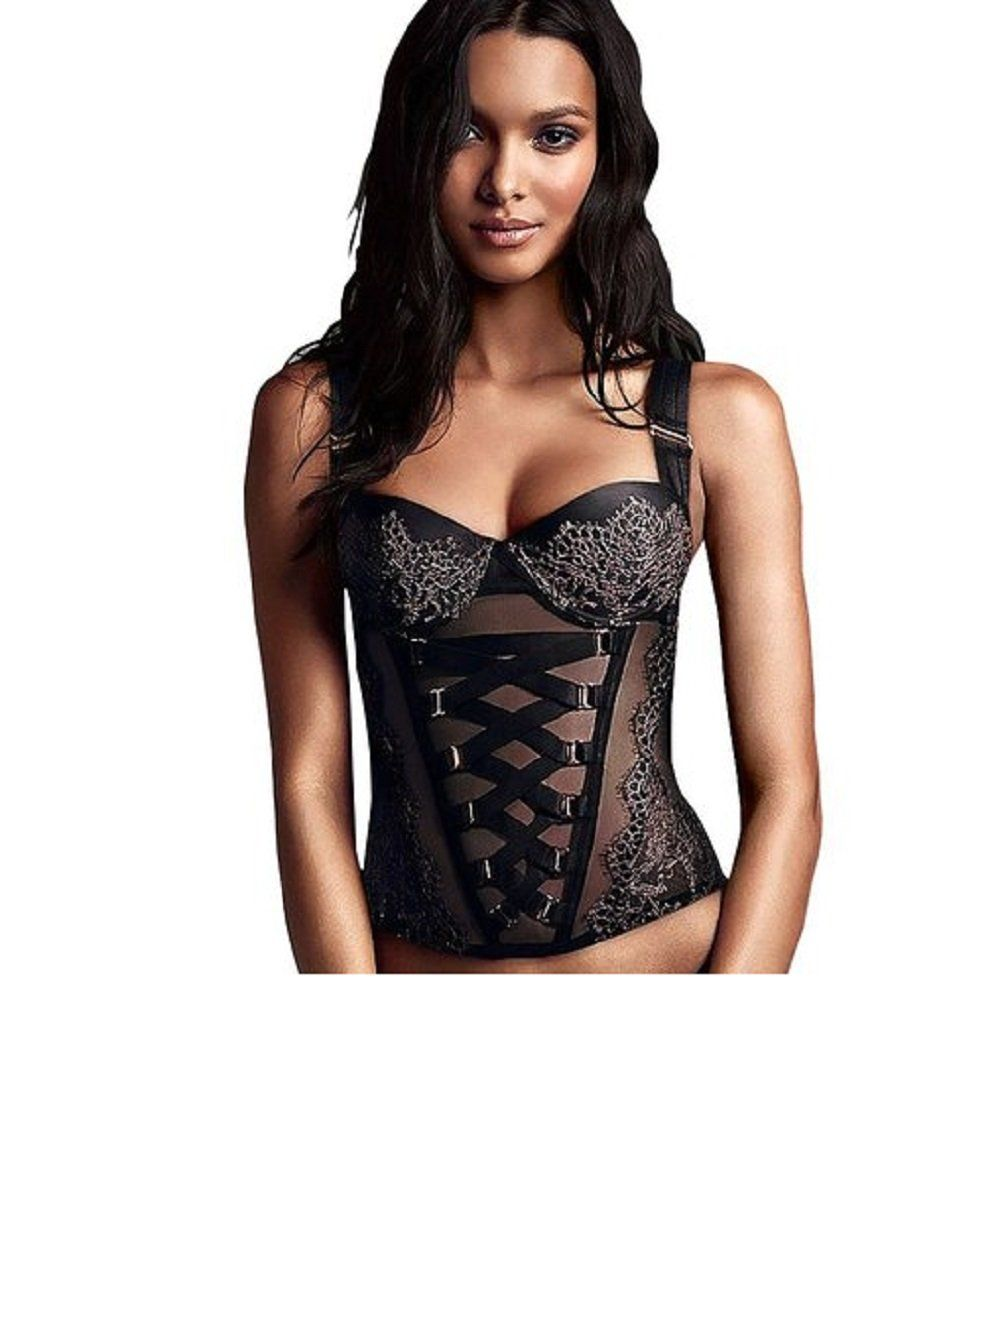 Victoria's Secret CrissCross Chantilly Lace Corset 36C Black/Gold ...